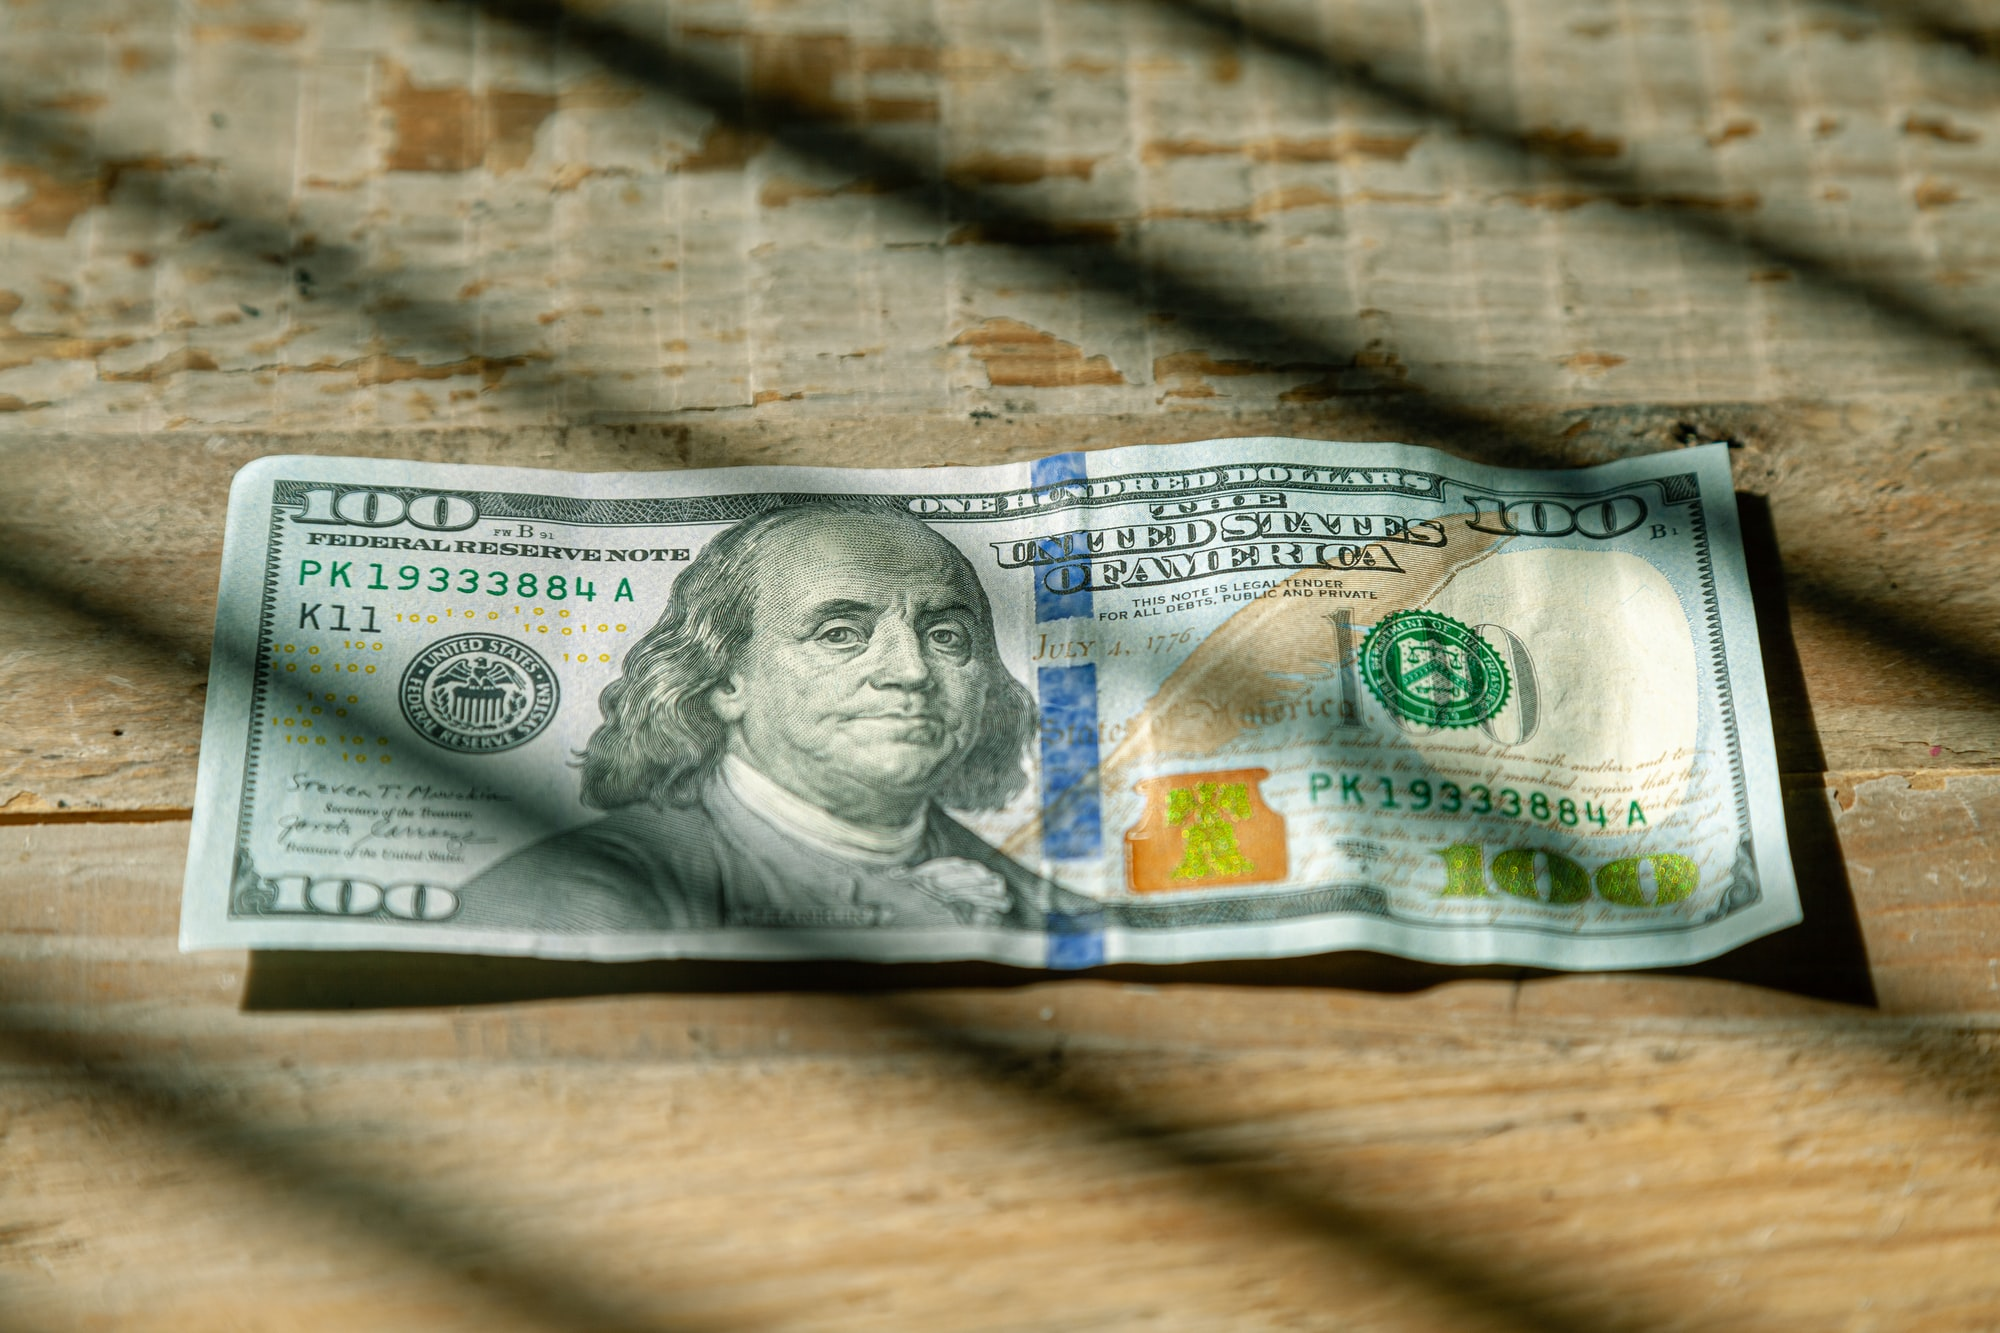 US Currency One hundred dollar bill flat lay on wood background